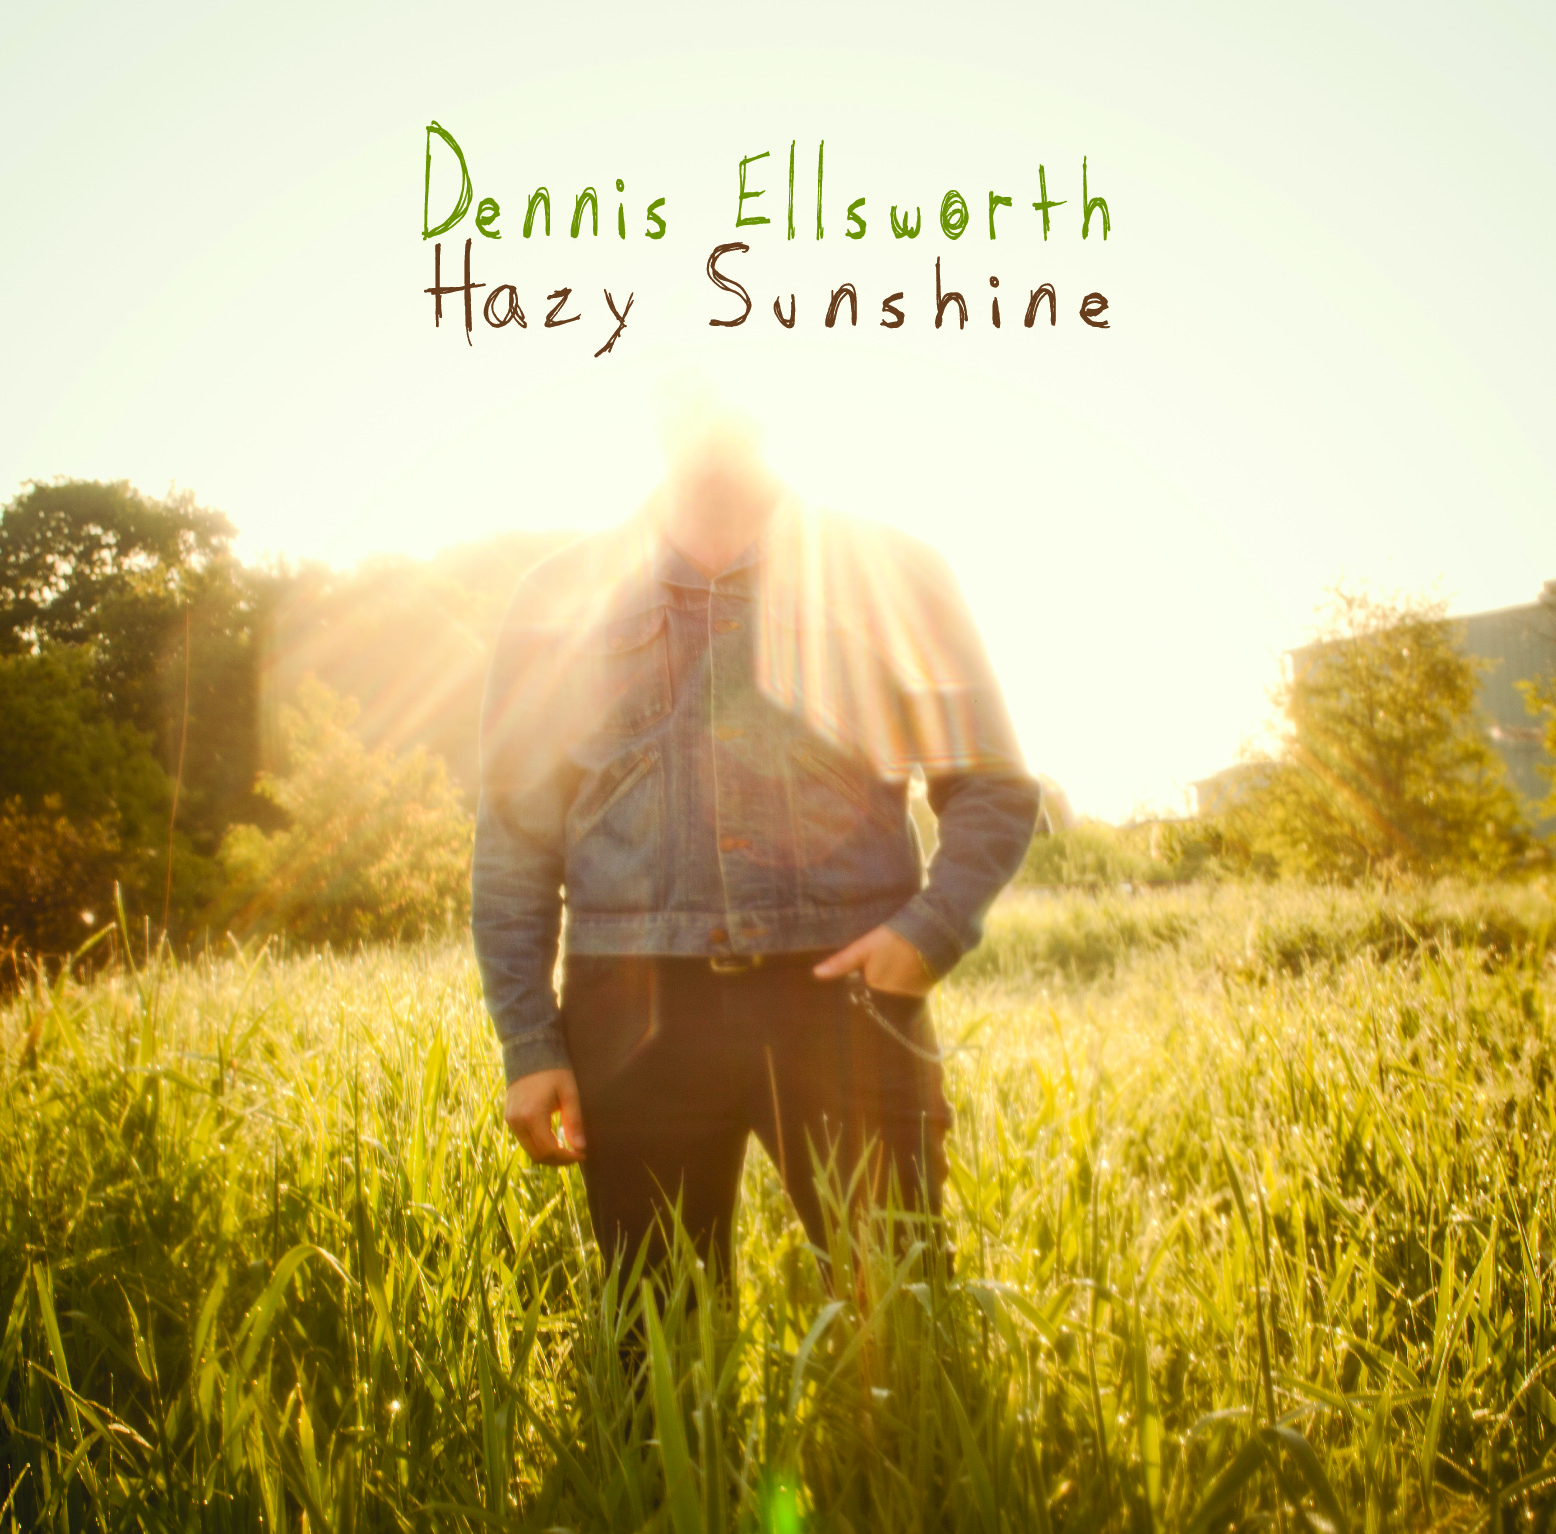 HAZY SUNSHINE (2013) - PRODUCED BY JOSH FINLAYSONENGINEERED BY SAAM HASHEMIRECORDED AT THE BATHOUSE STUDIOS, BATH, ONTARIOTRACKLIST:THINGS I WANTCOKE MACHINE GLOWLET IT ALL OUTIF I FIND THE TRUTHRUDDERLESS DAYHAZY SUNSHINEEVERYTHING'S FINEPARADISEHARRY NILSSON'S HEARTSILVER TEARSHAPPINESSCAN'T TURN TO YOU